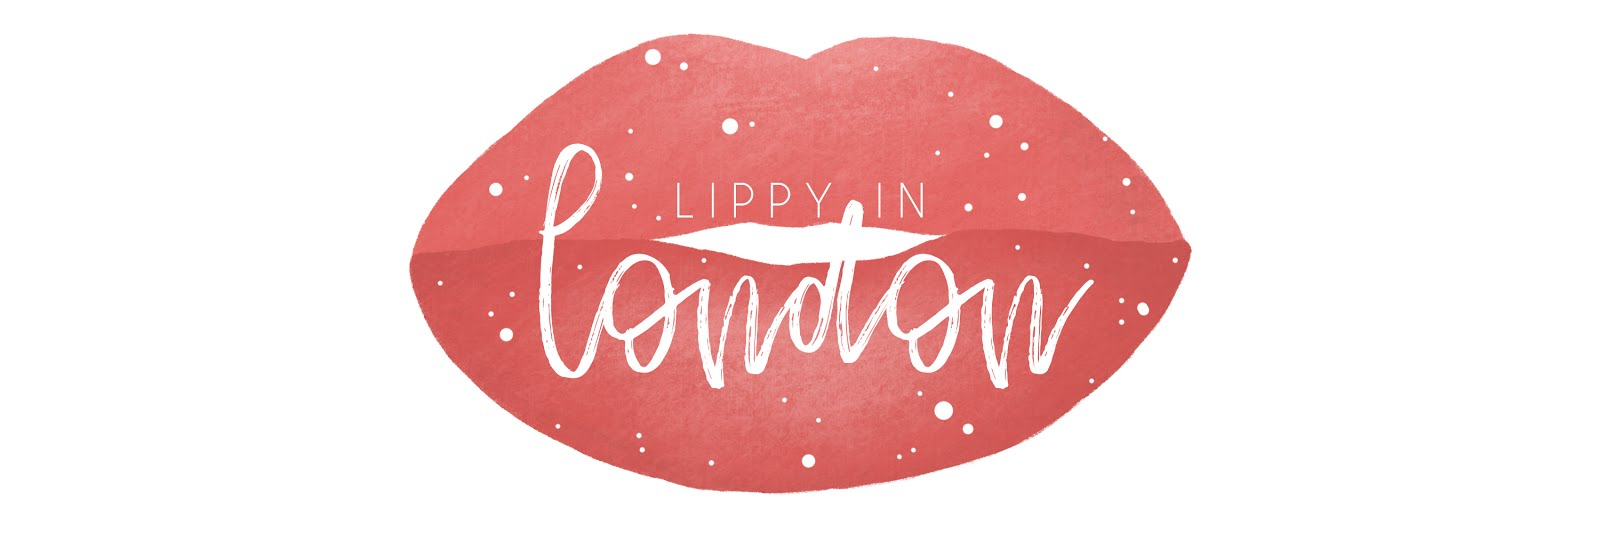 Lippy in London